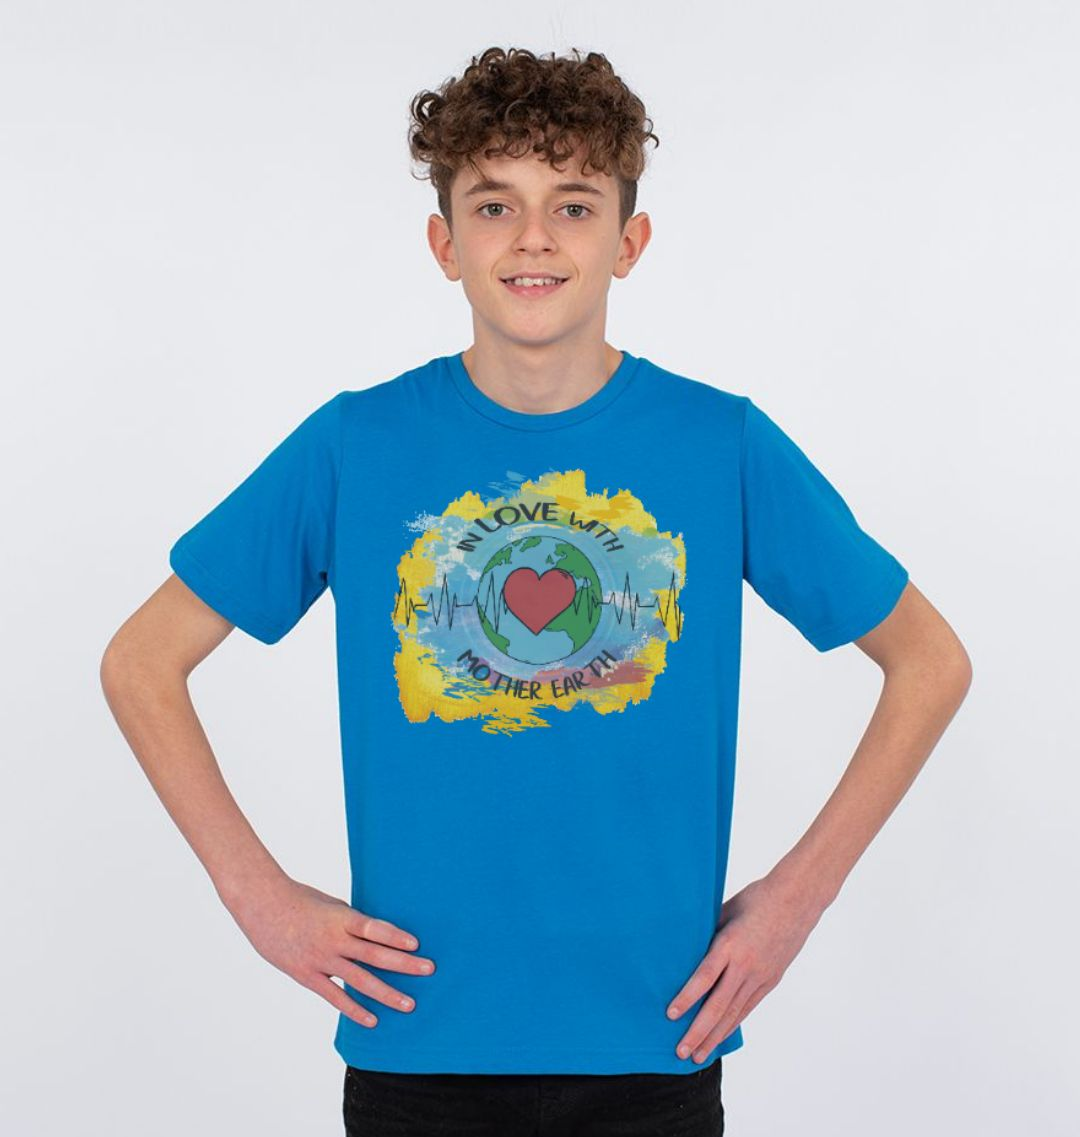 Children's Climate T Shirt 'In Love With Mother Earth' Soft Organic Cotton blue